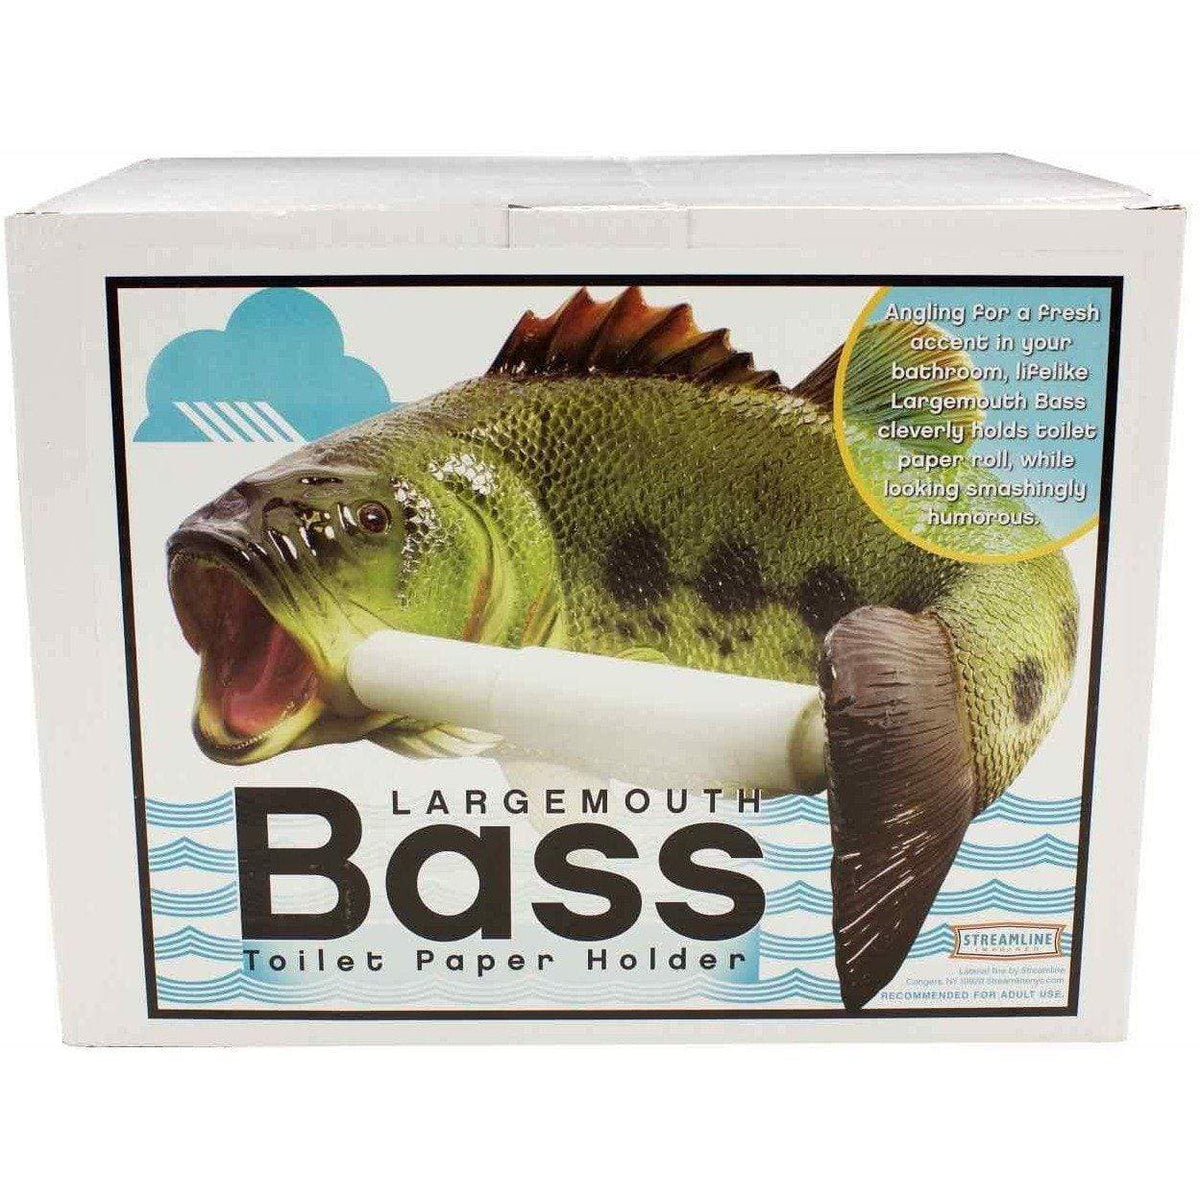 Large Mouth Bass - Toilet Paper Holder